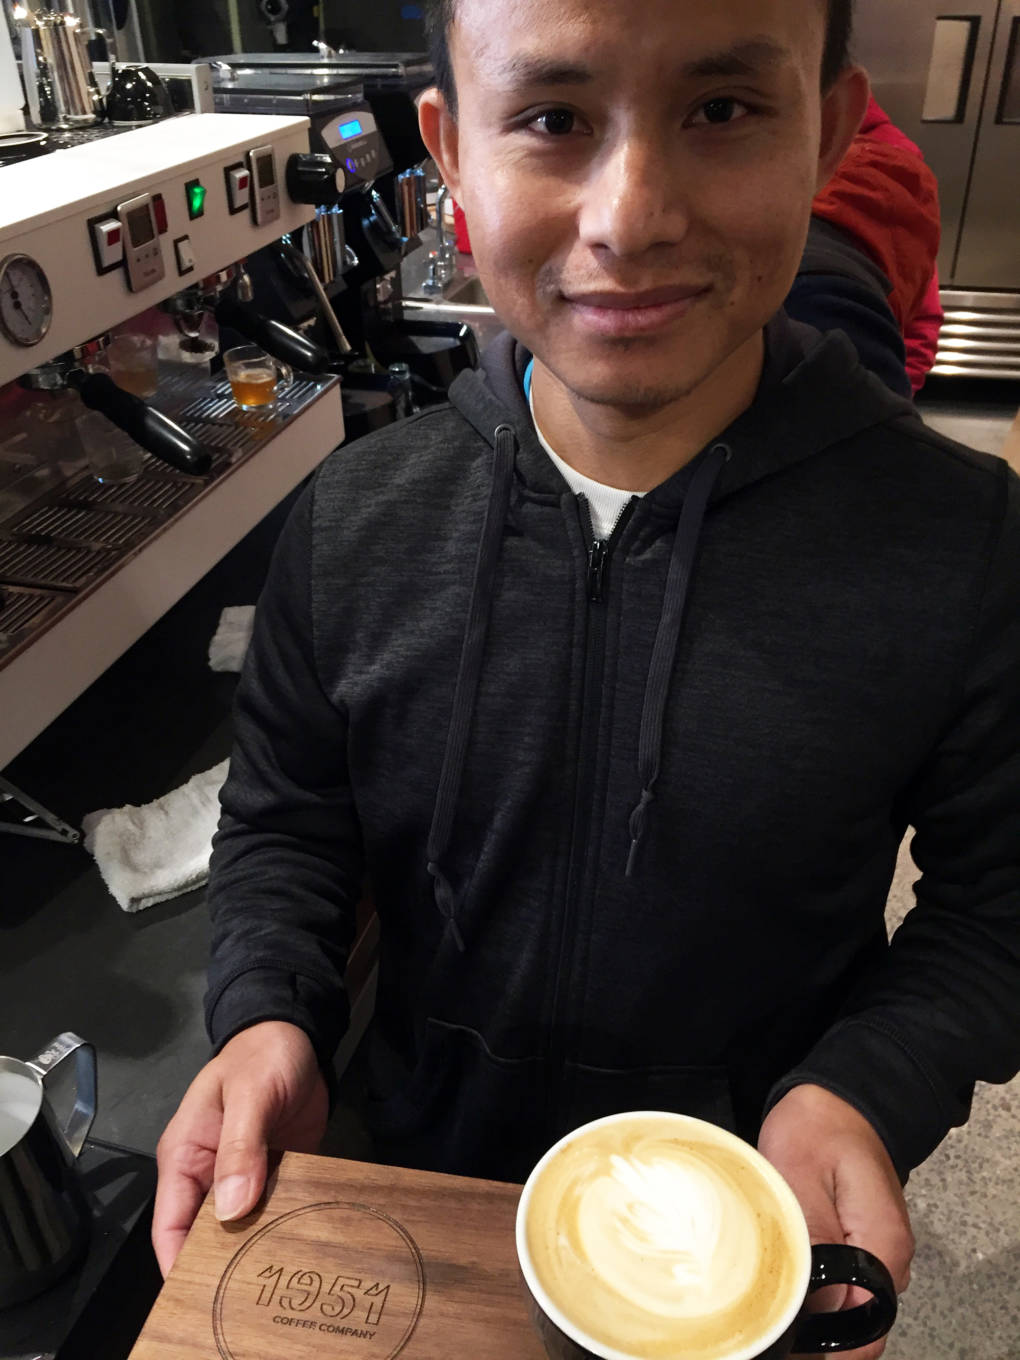 All the baristas working at Berkeley's 1951 Coffee Company arerecent refugees